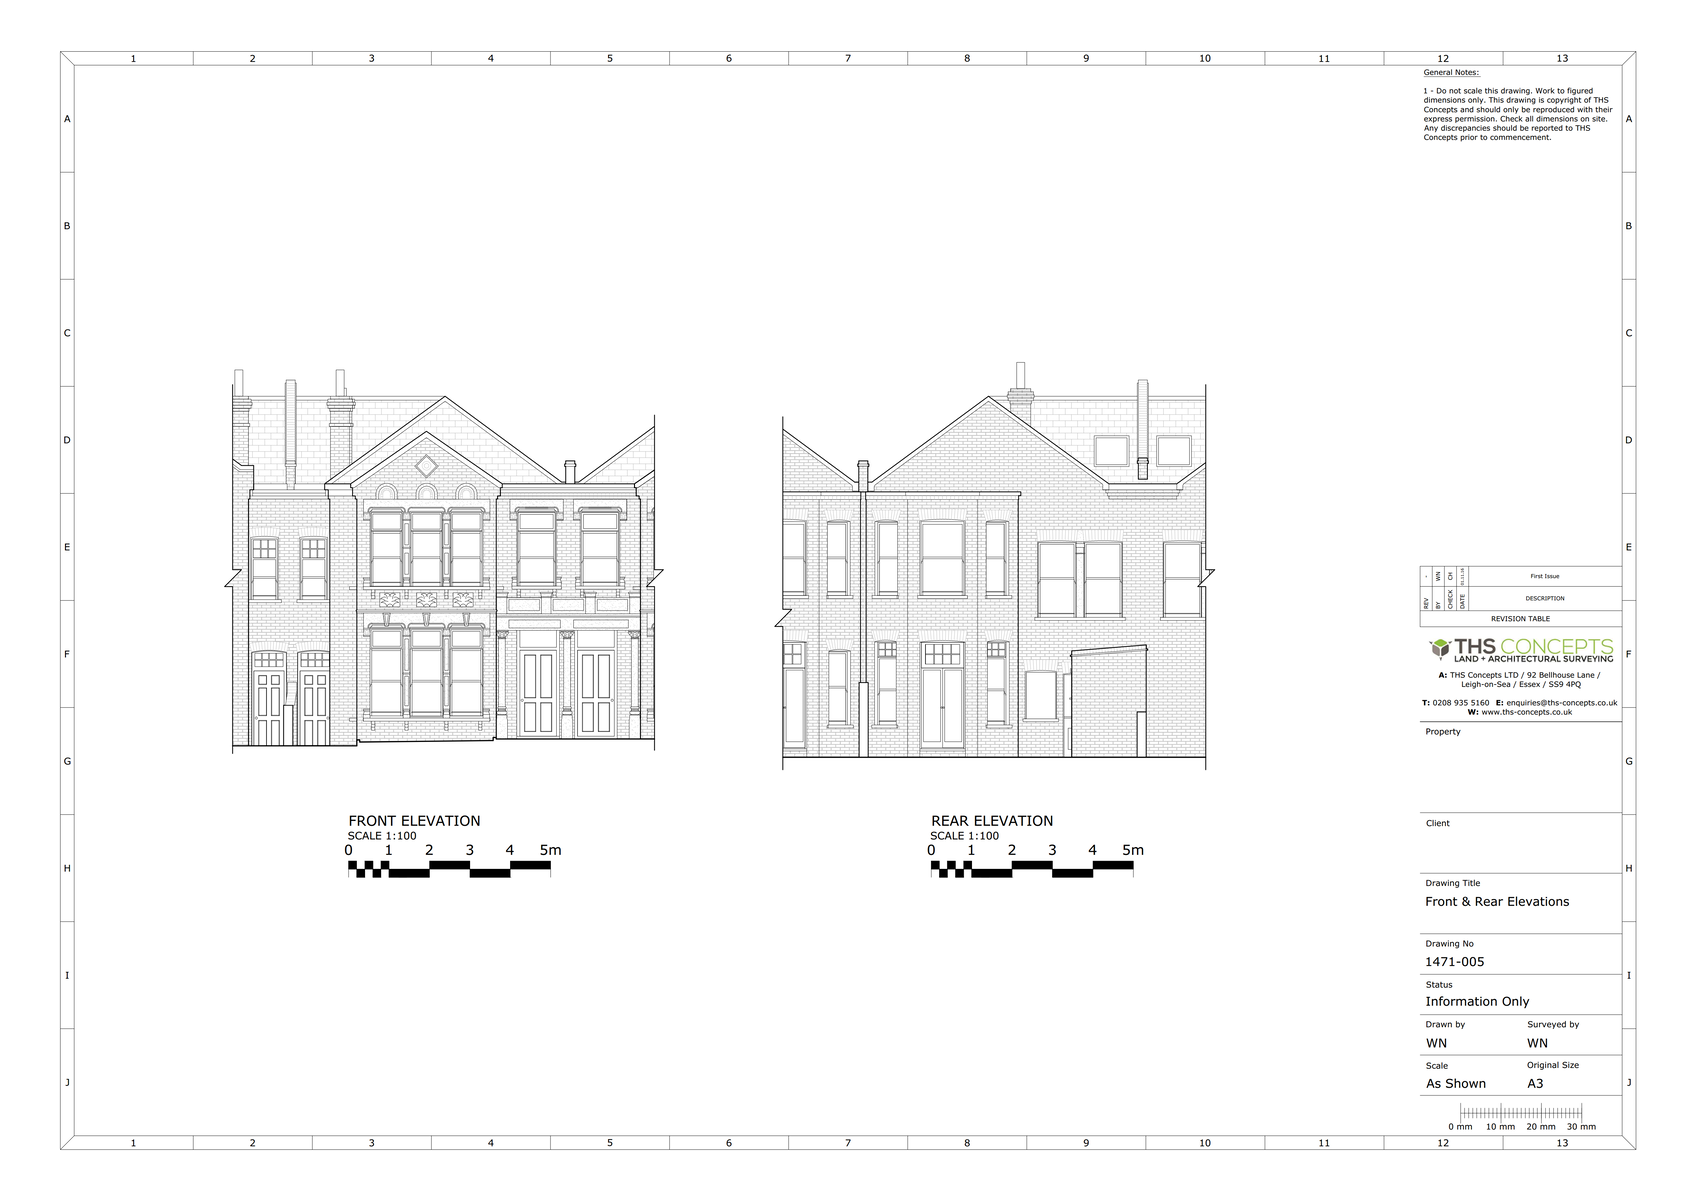 Measured Survey Elevation drawing